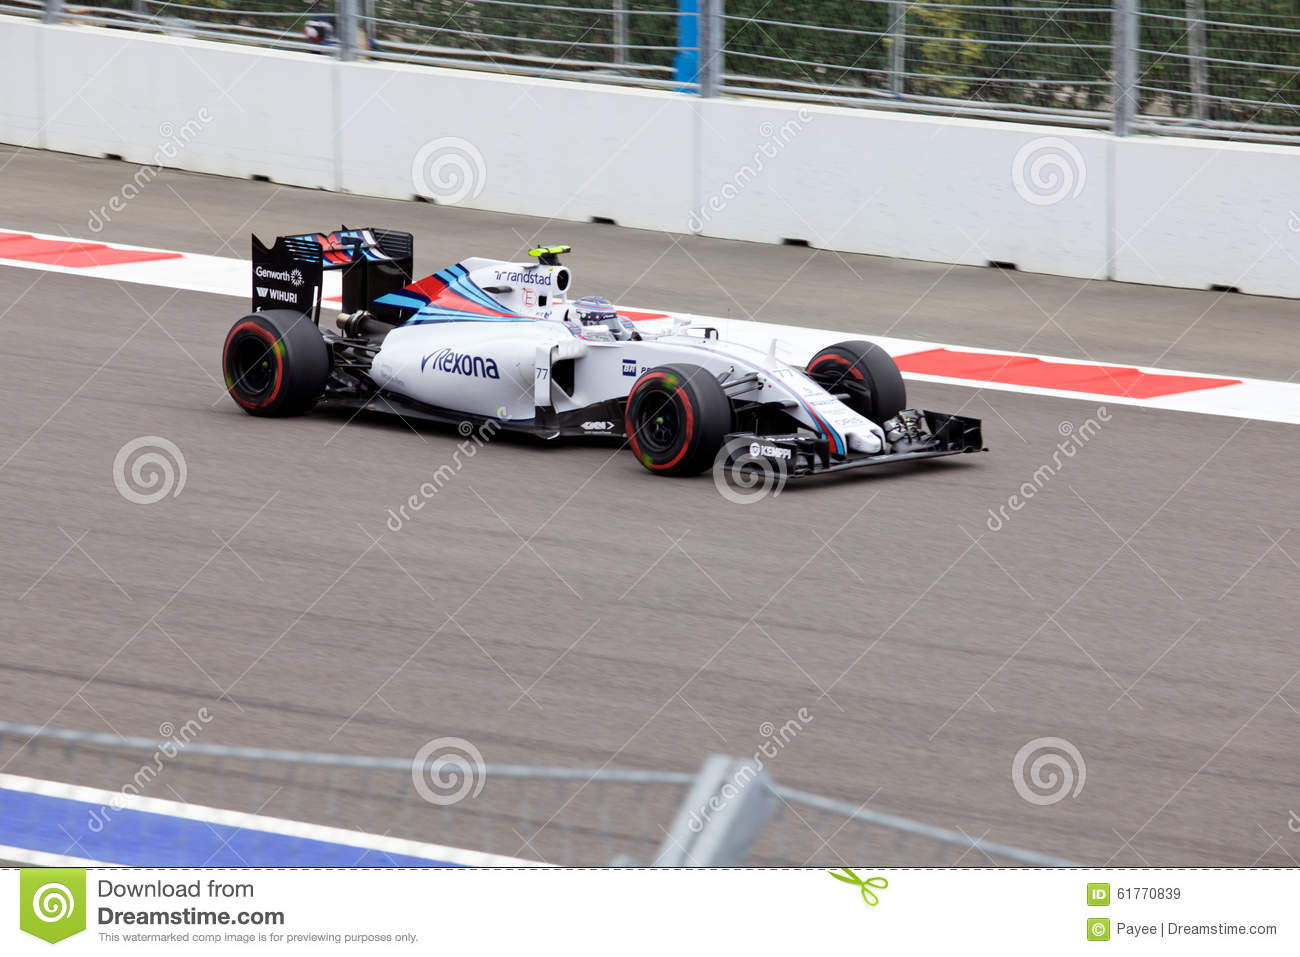 valtteri-bottas-williams-martini-racing-